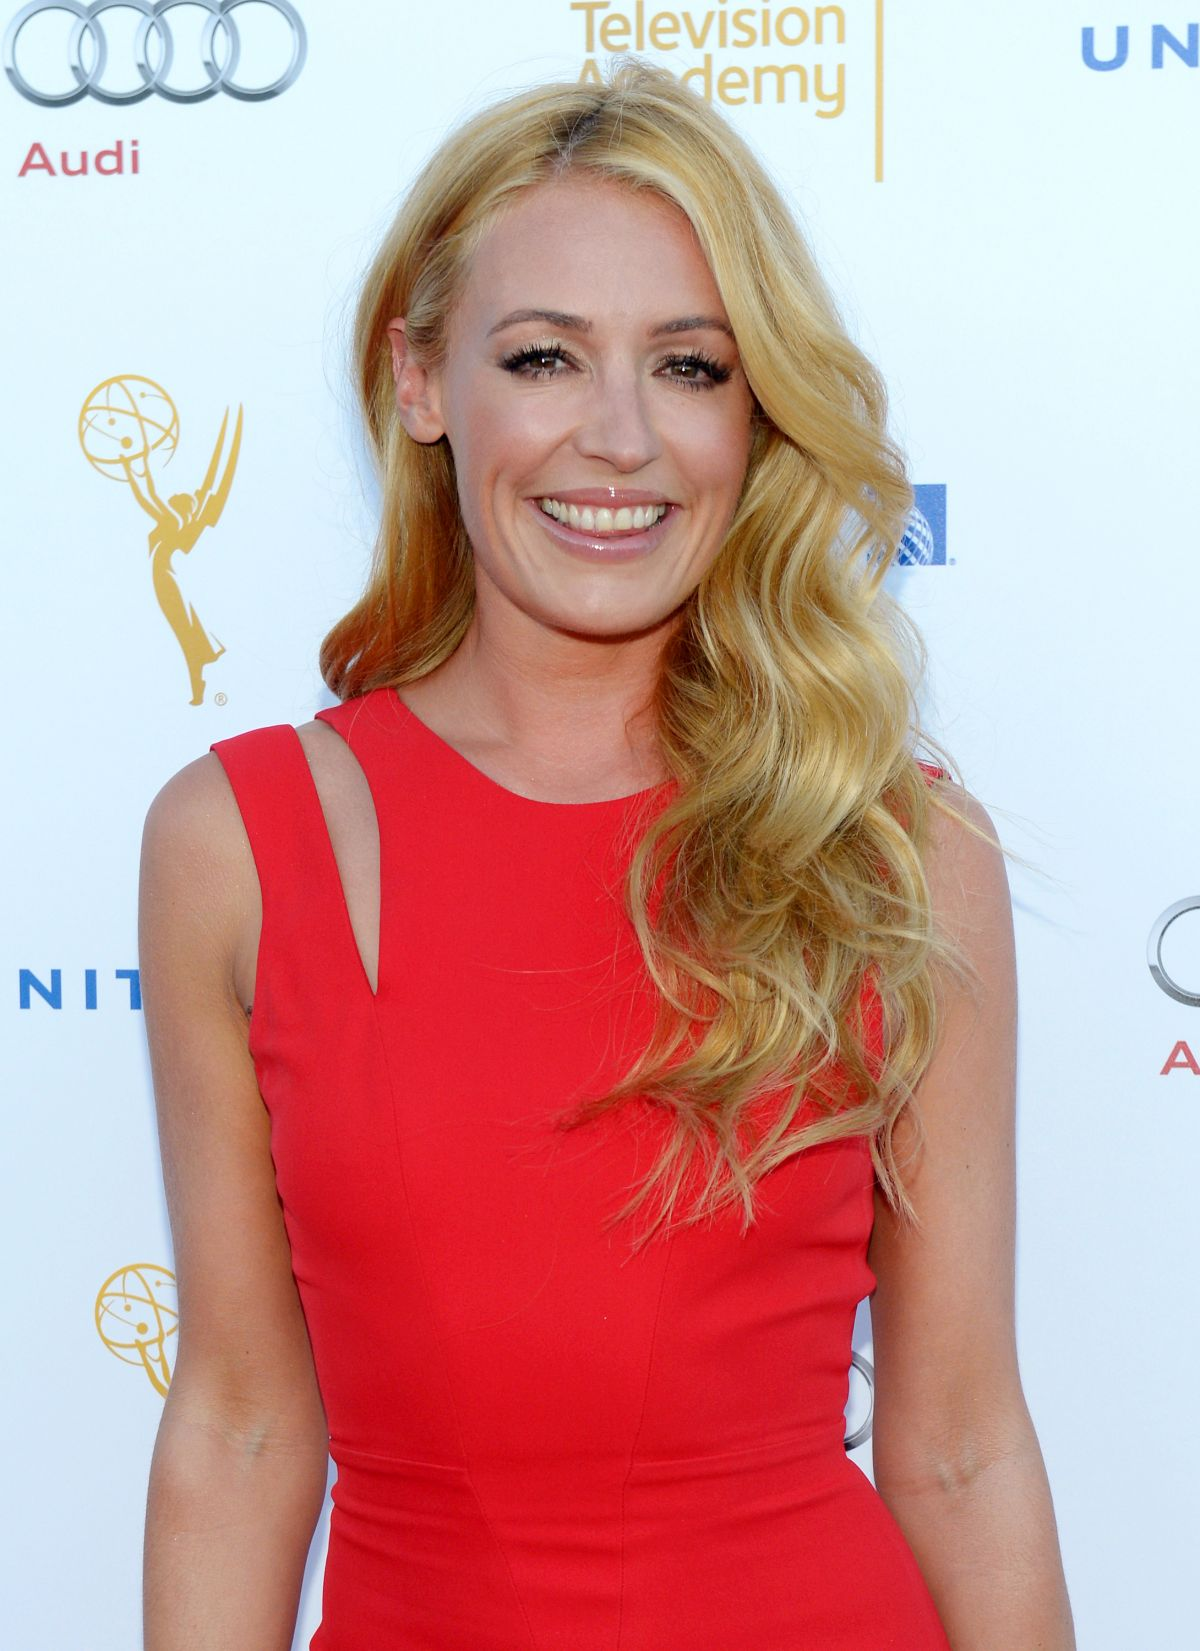 CAT DEELEY at Emmy Awards Performers Nominee Reception